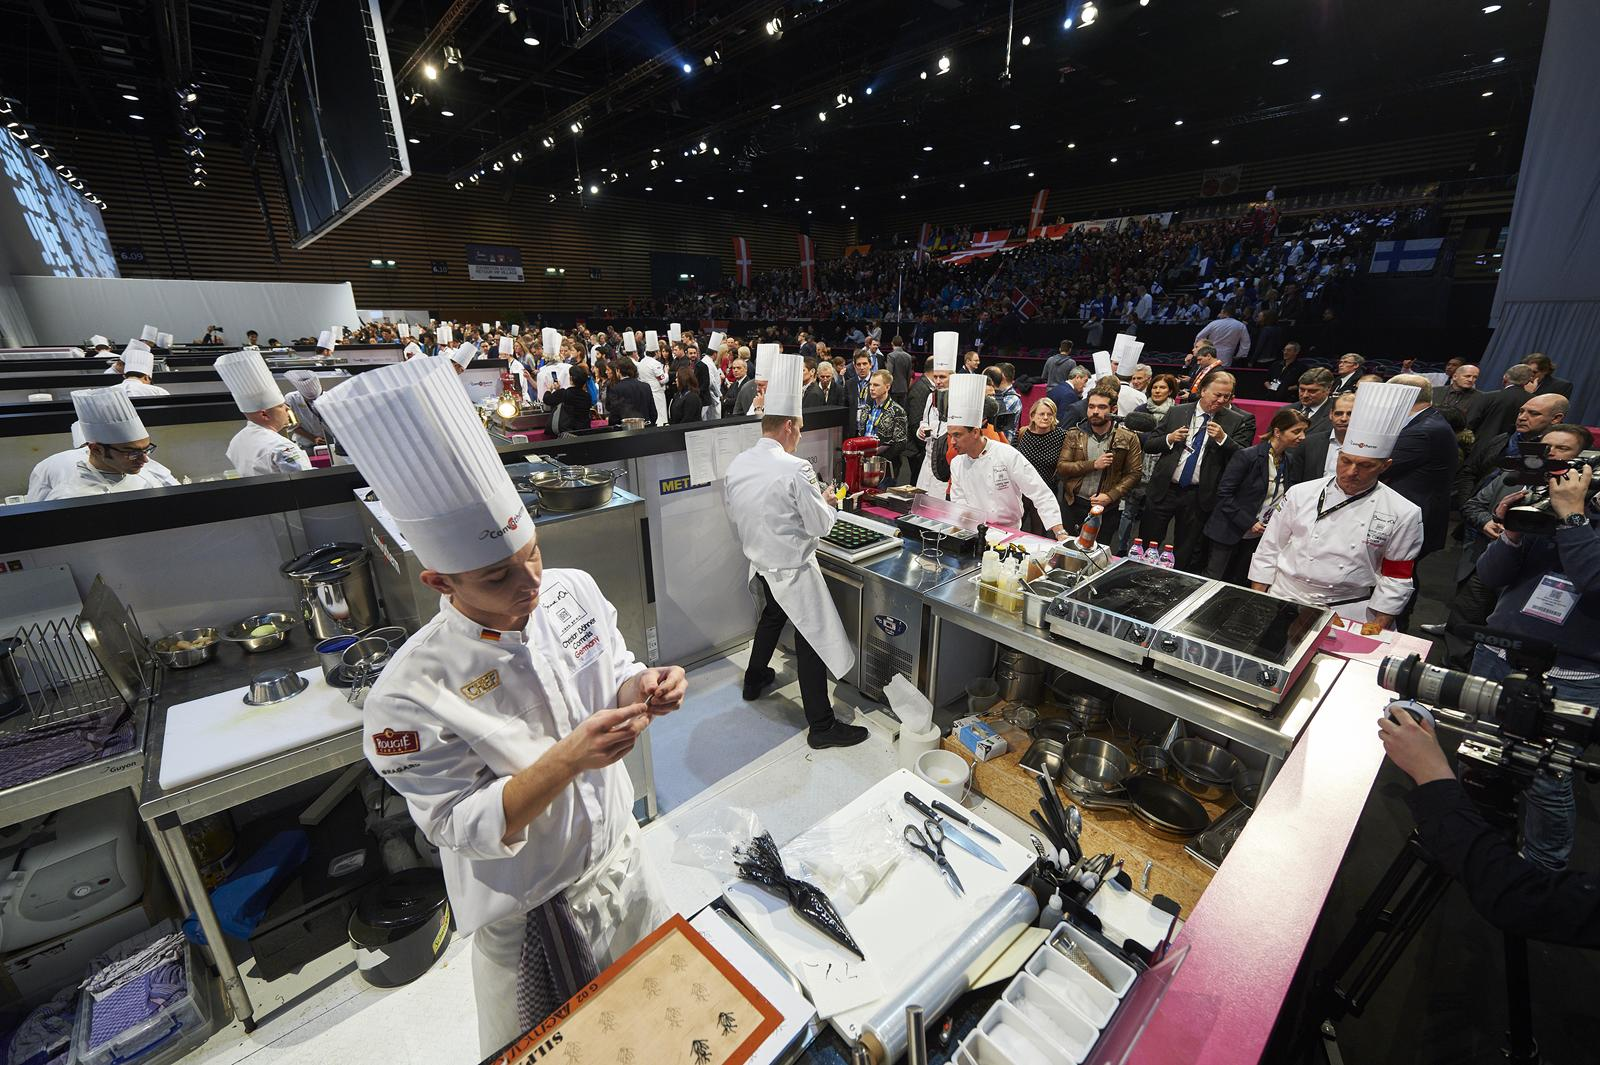 Bocuse-dor-new-zealand-gallery-27